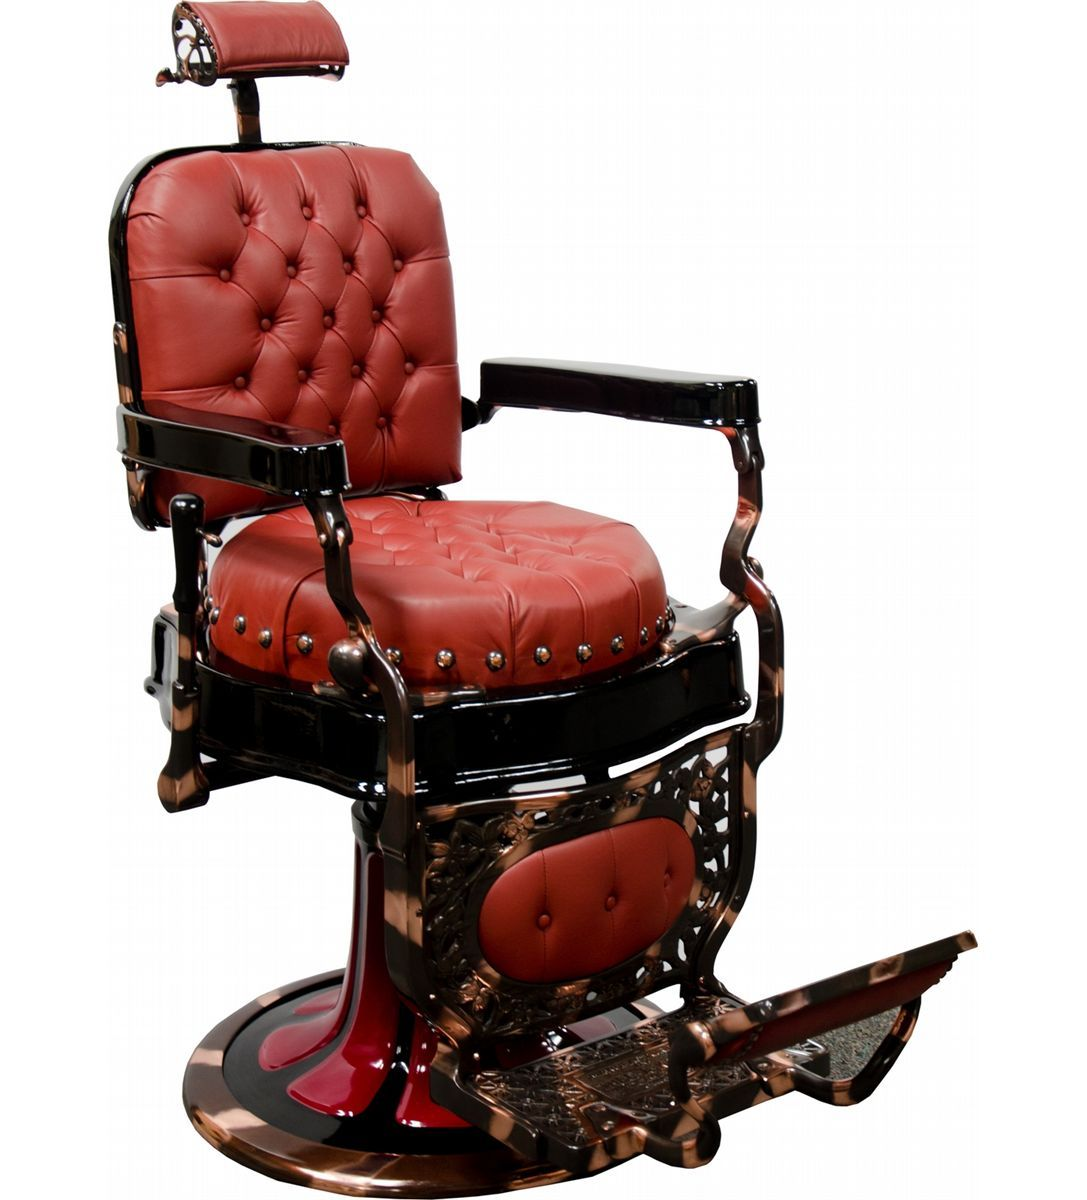 vintage barber chairs - Google Search - Vintage Barber Chairs - Google Search Who's Next ? (Barber Chairs